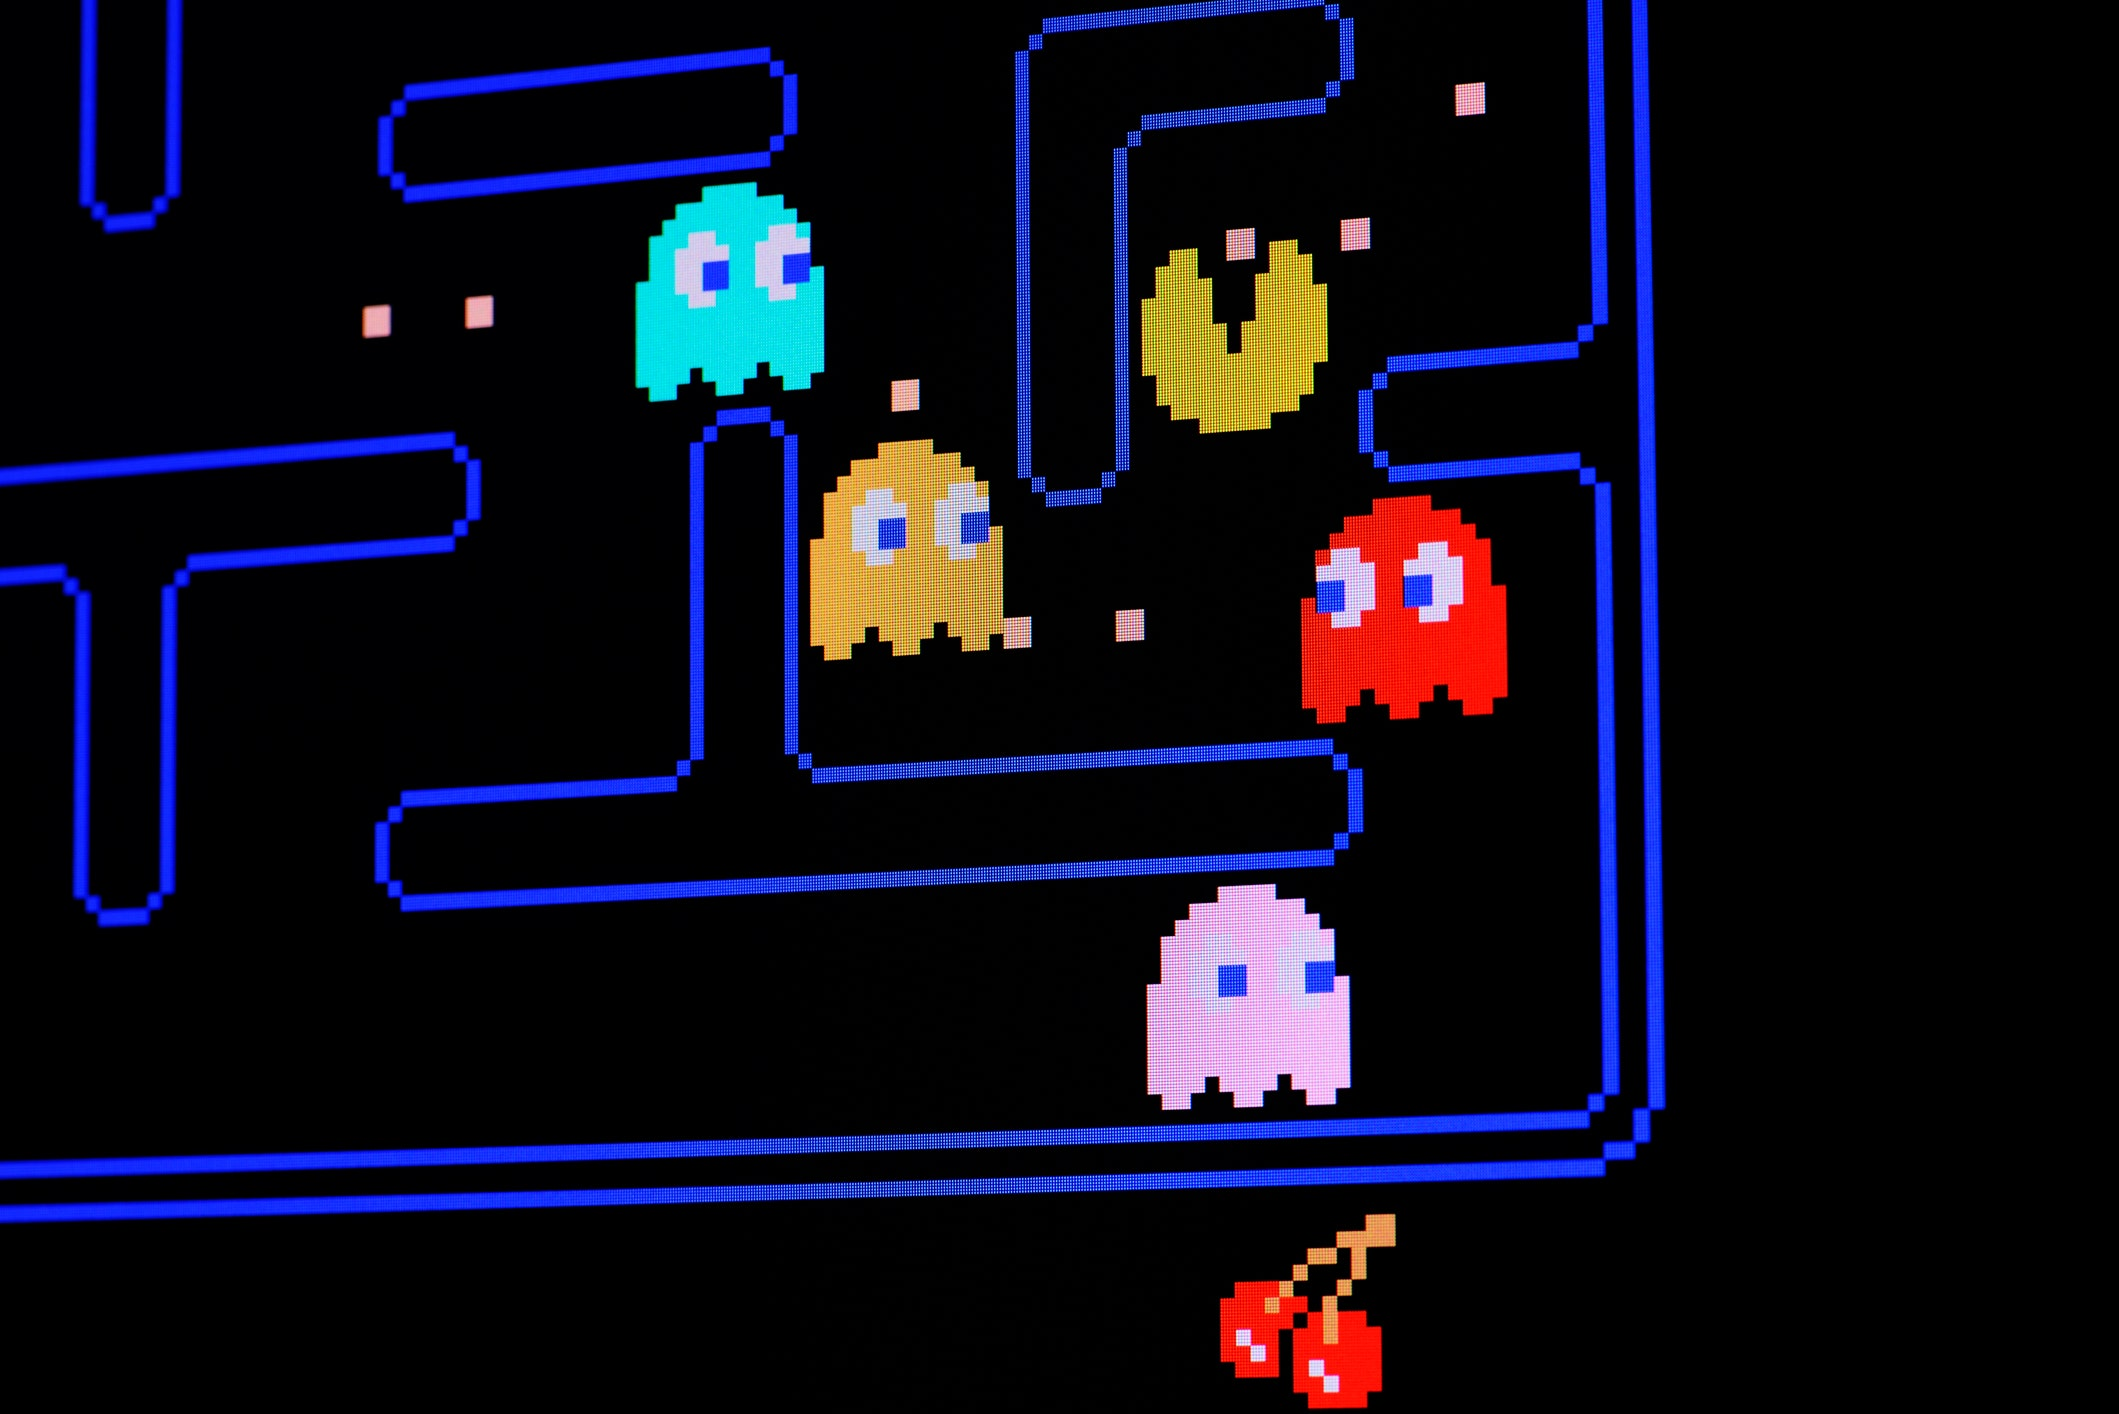 Retro, classic video games steeped in nostalgia are impacting a new generation